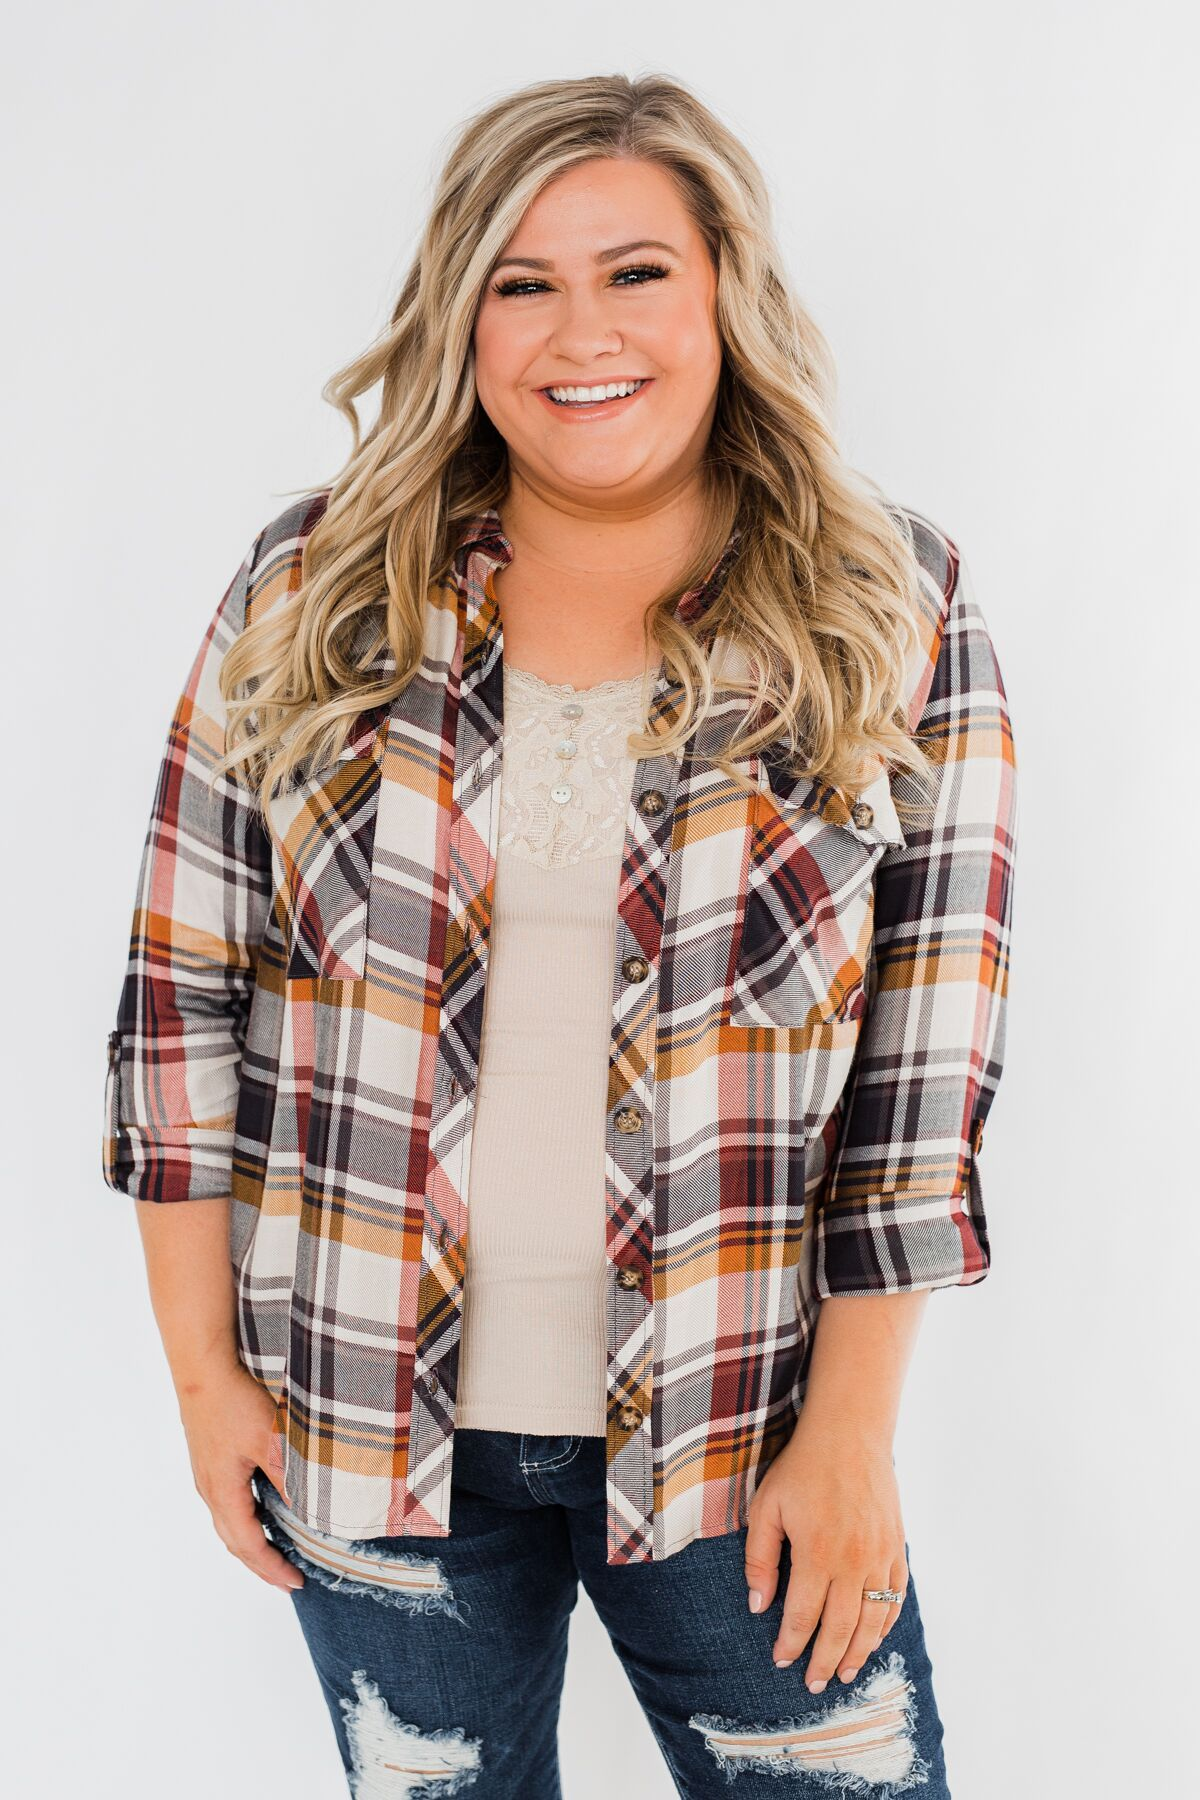 You've Got Me Hooked Flannel Top- Navy & Rust